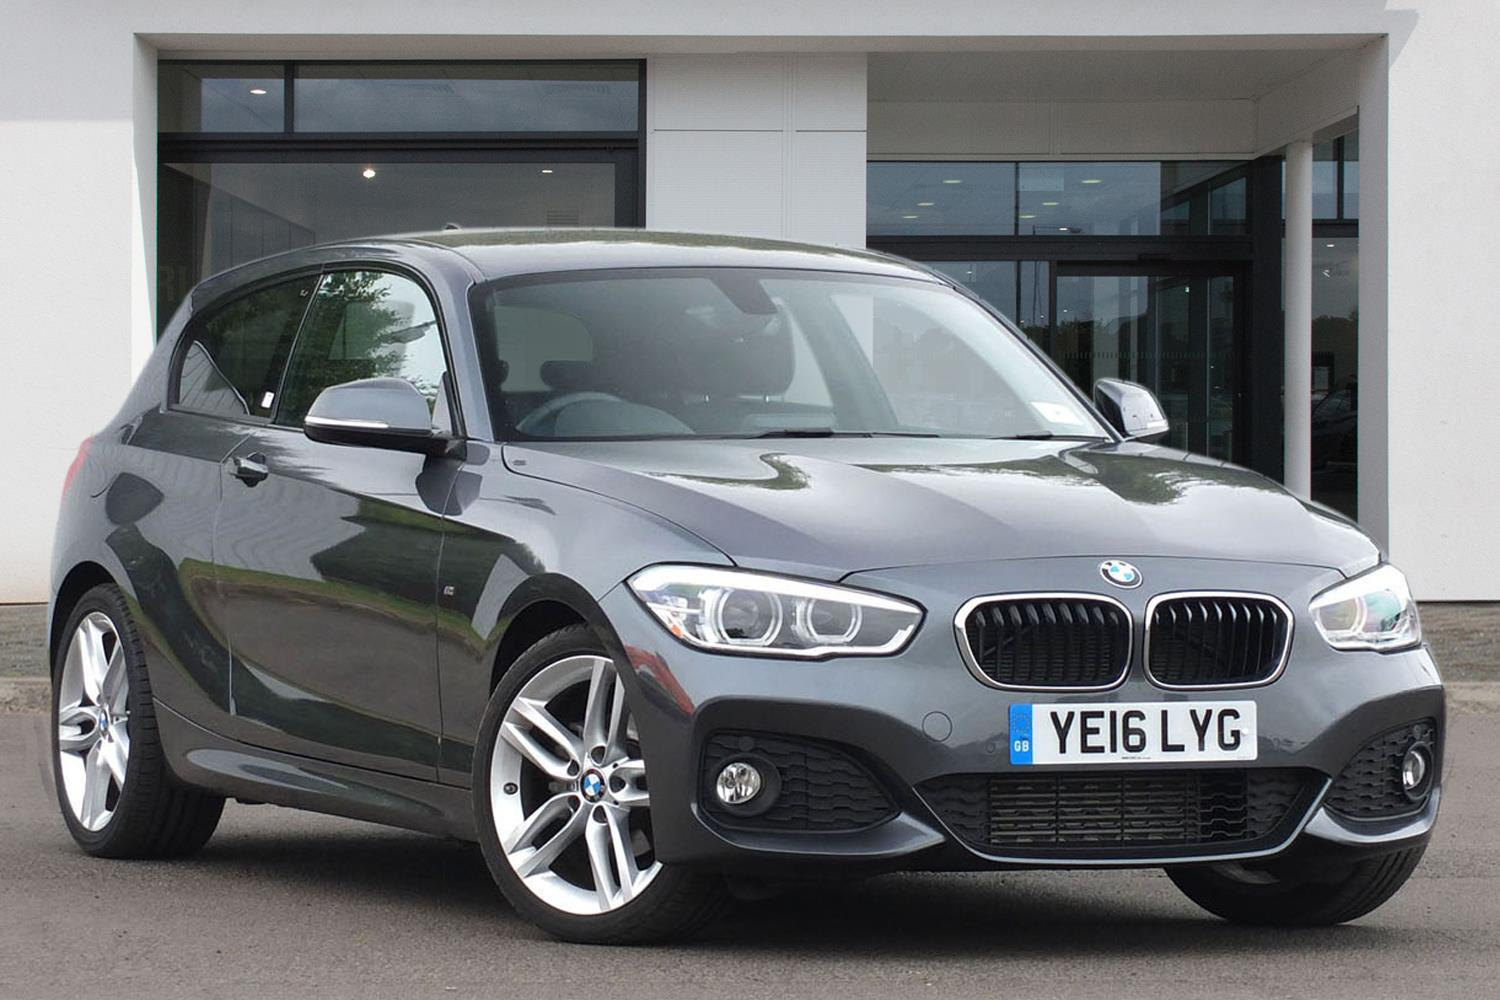 BMW 1 Series 3-door Sports Hatch YE16LYG - Image 1